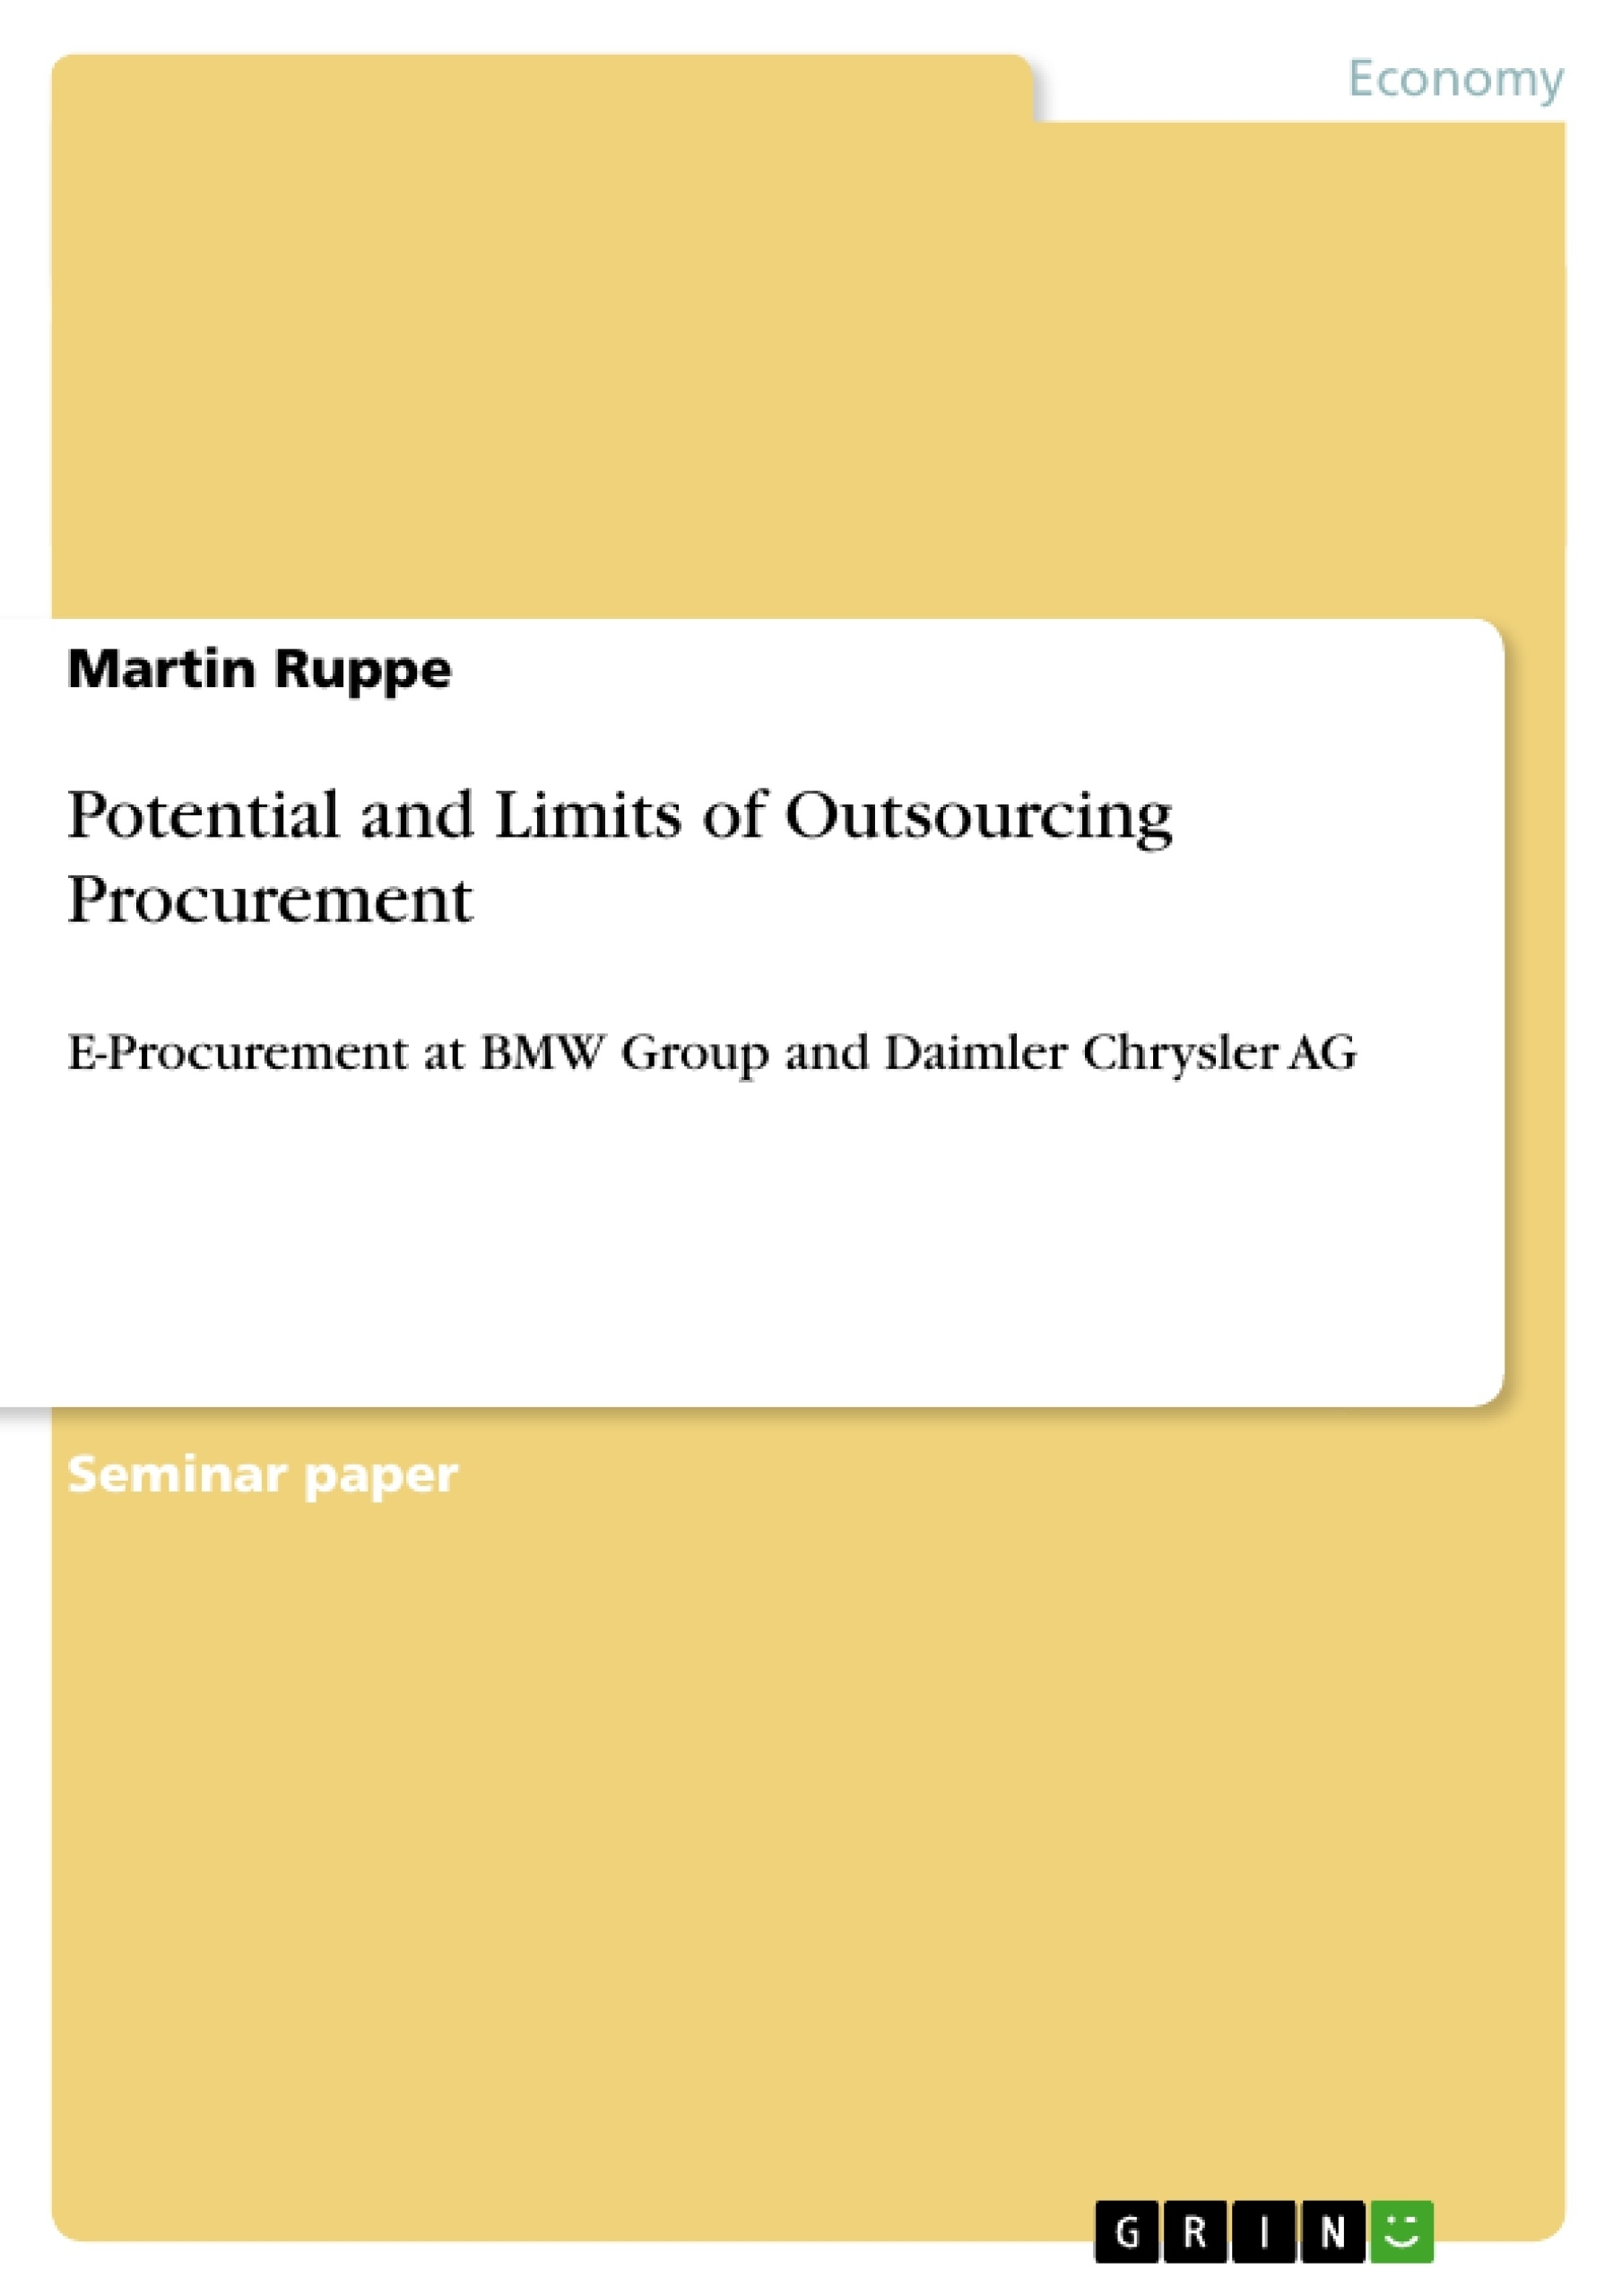 Title: Potential and Limits of Outsourcing Procurement